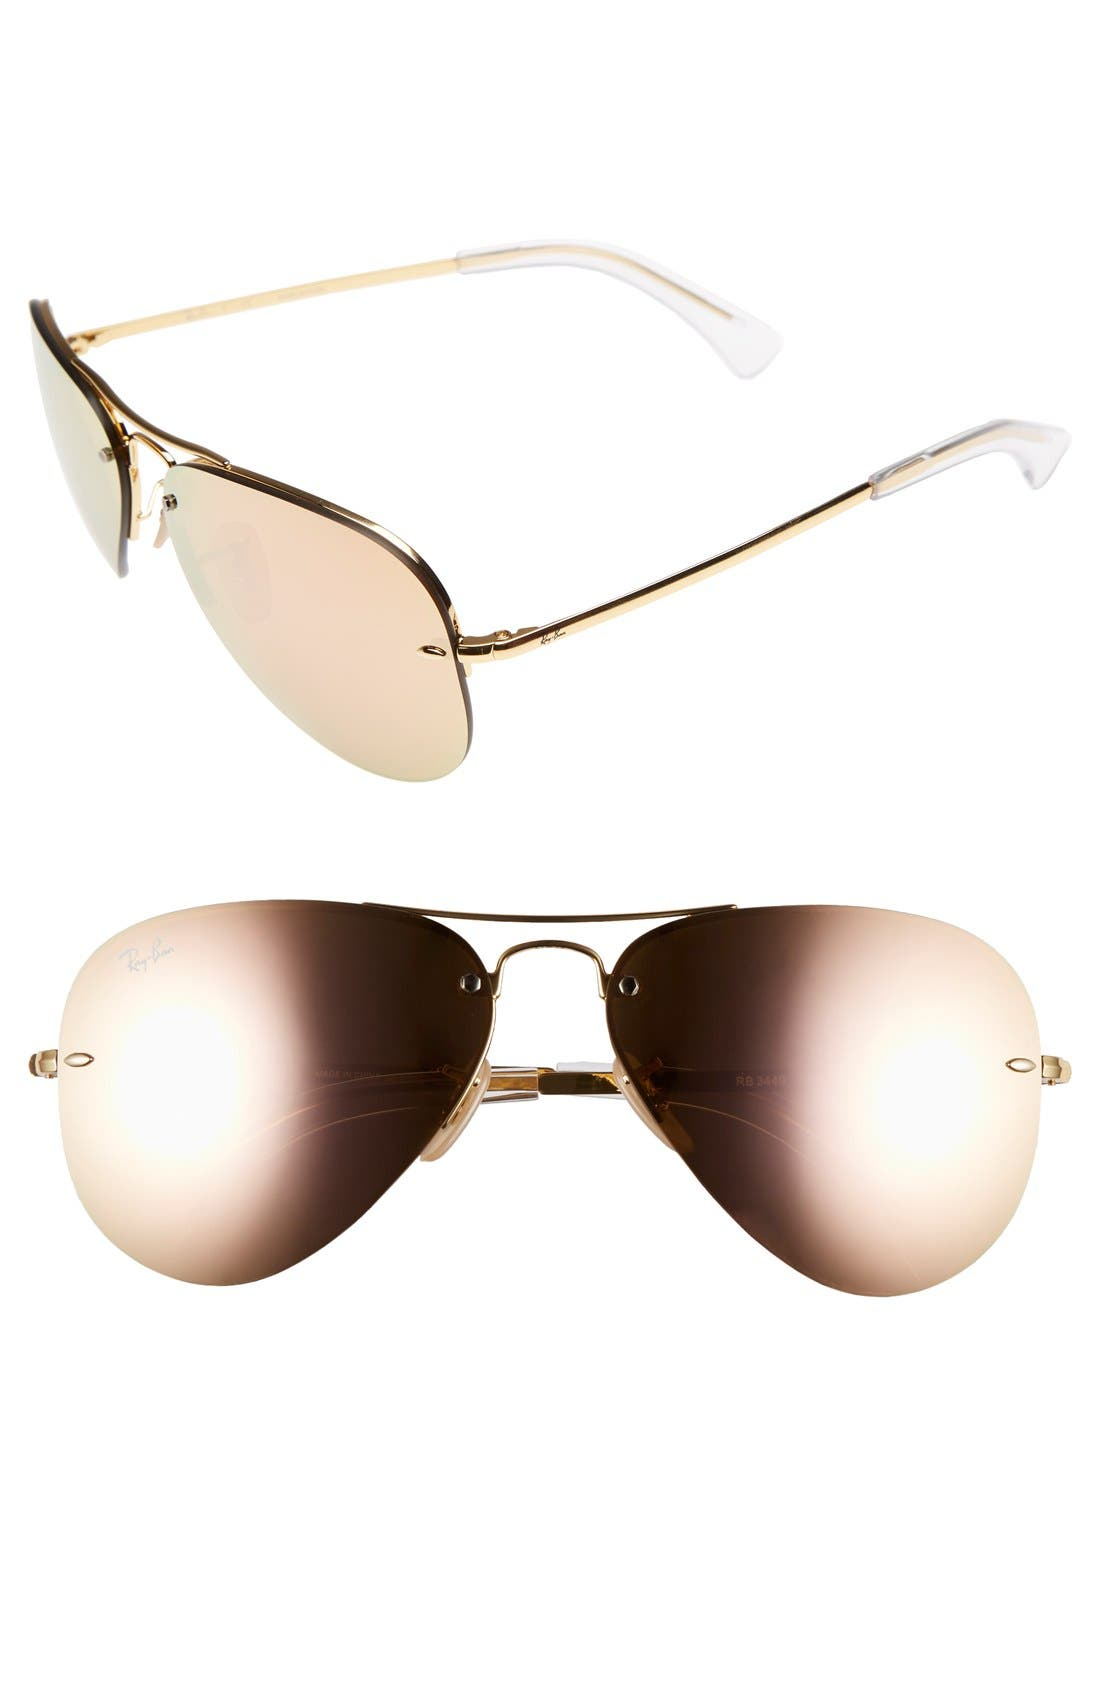 Ray-Ban Highstreet 5m Semi Rimless Aviator Sunglasses -